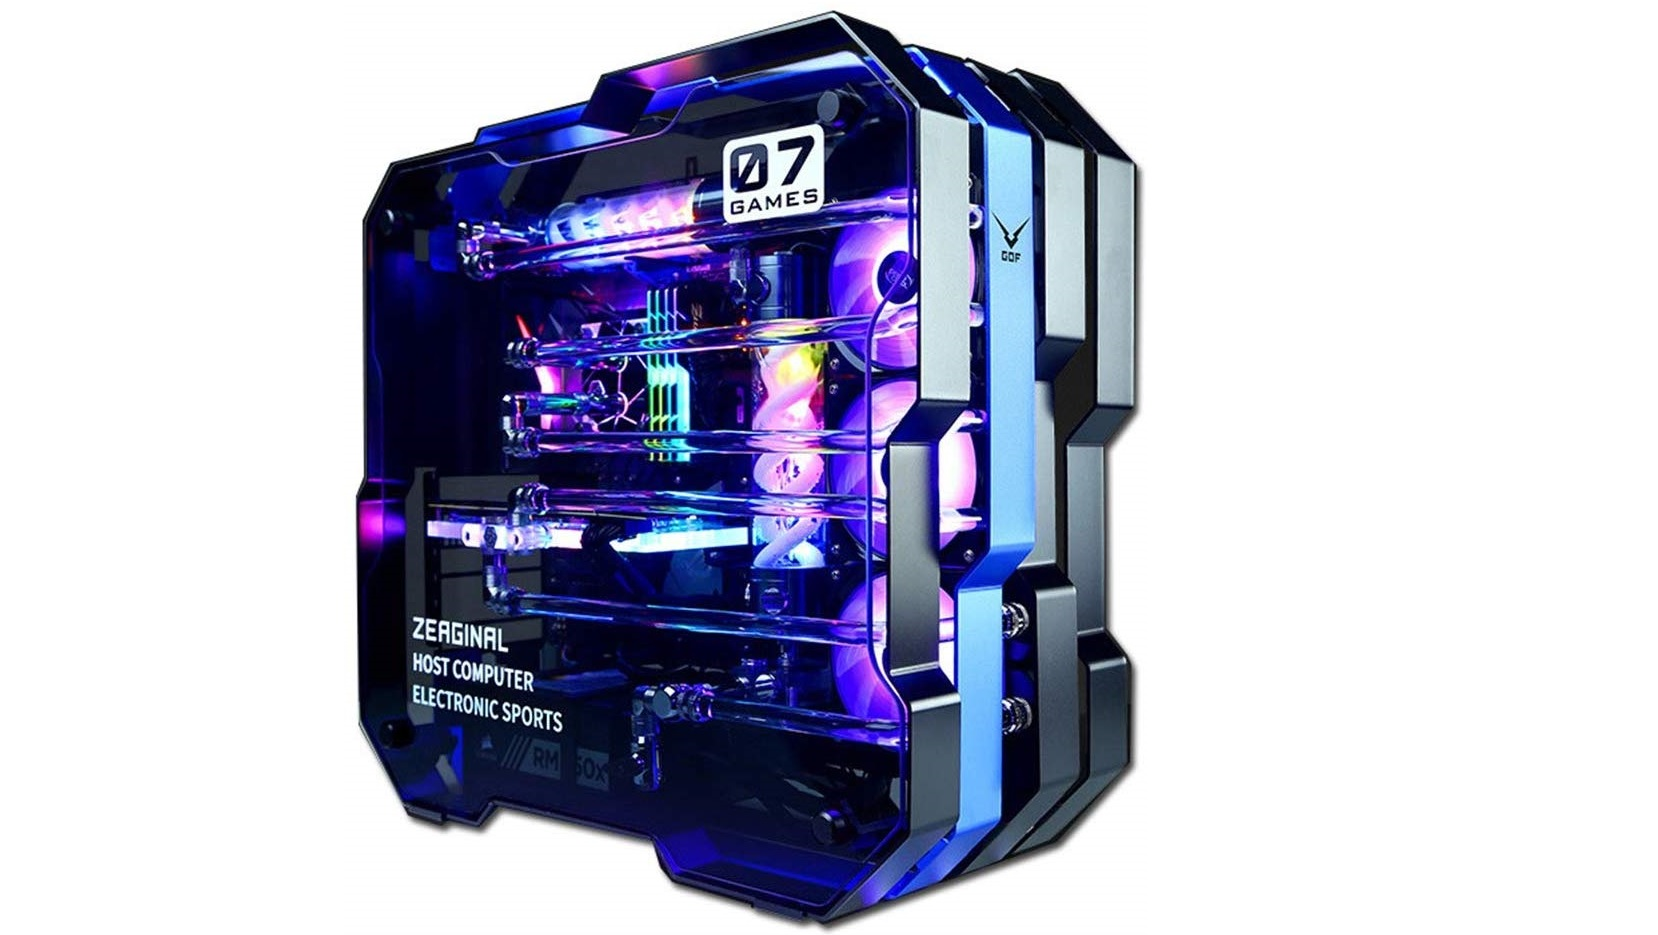 The Best Gaming PC 2020